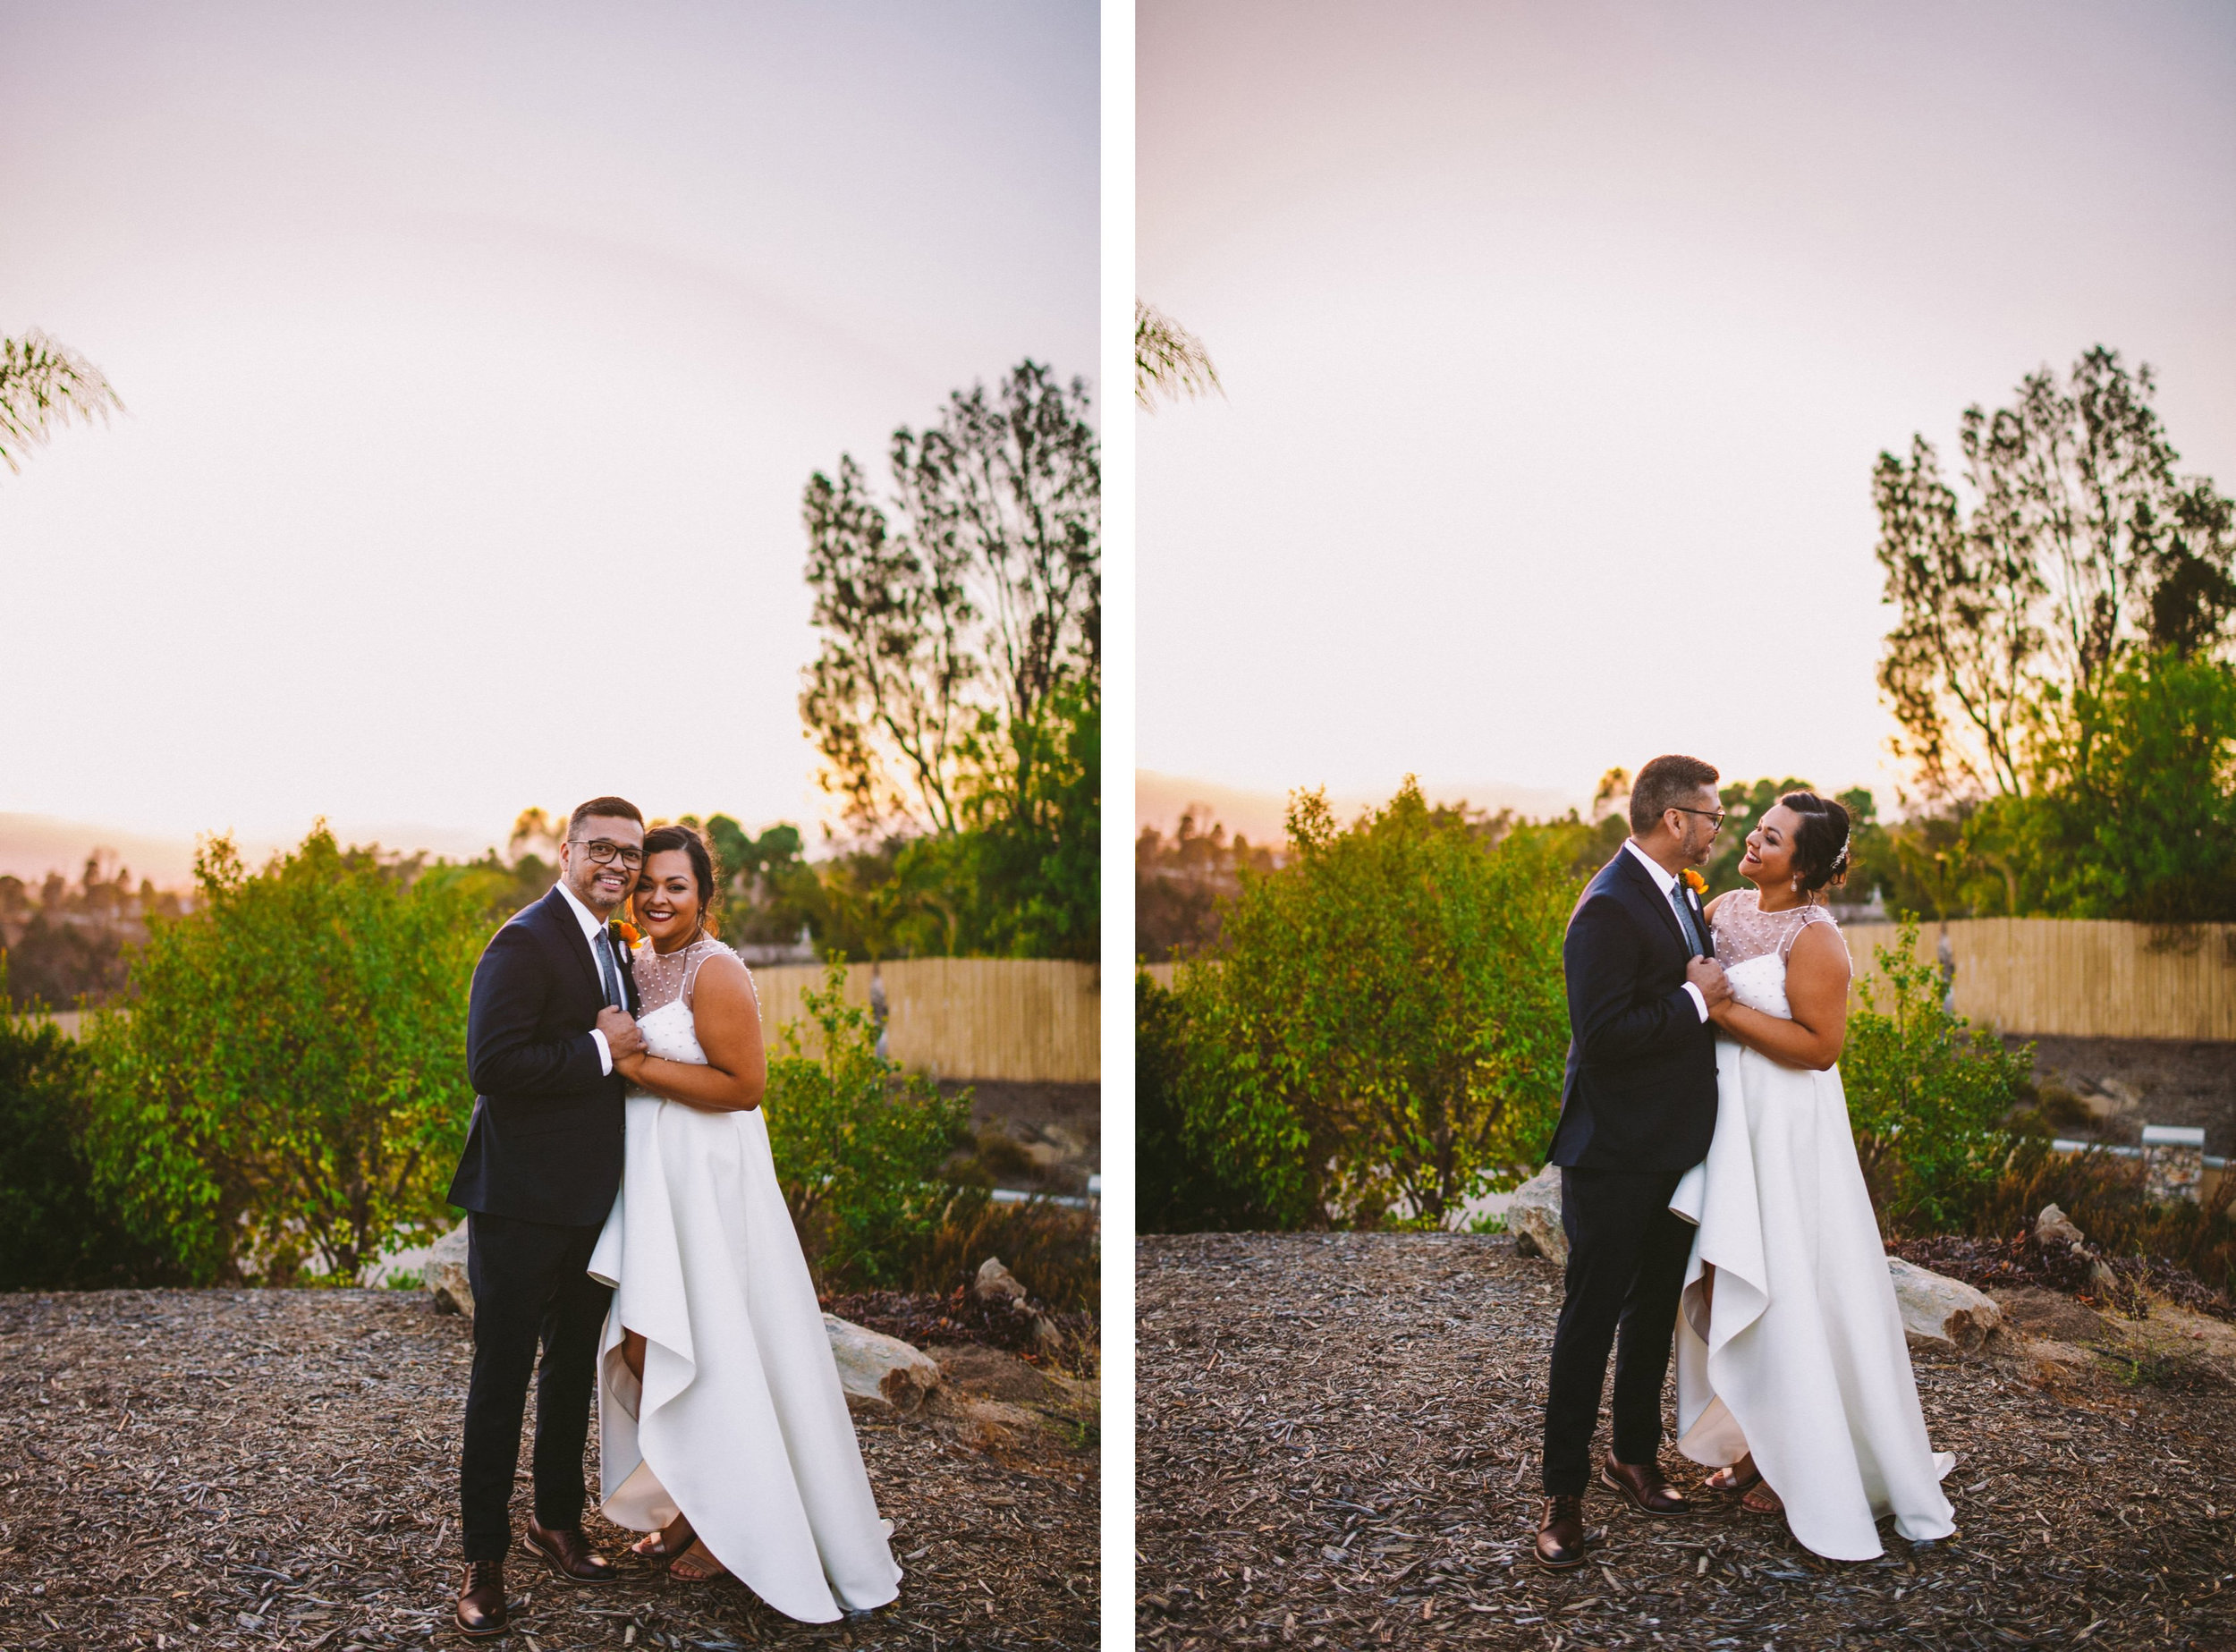 Intimate & colorful Temecula Documentary Wedding Photography-86.jpg